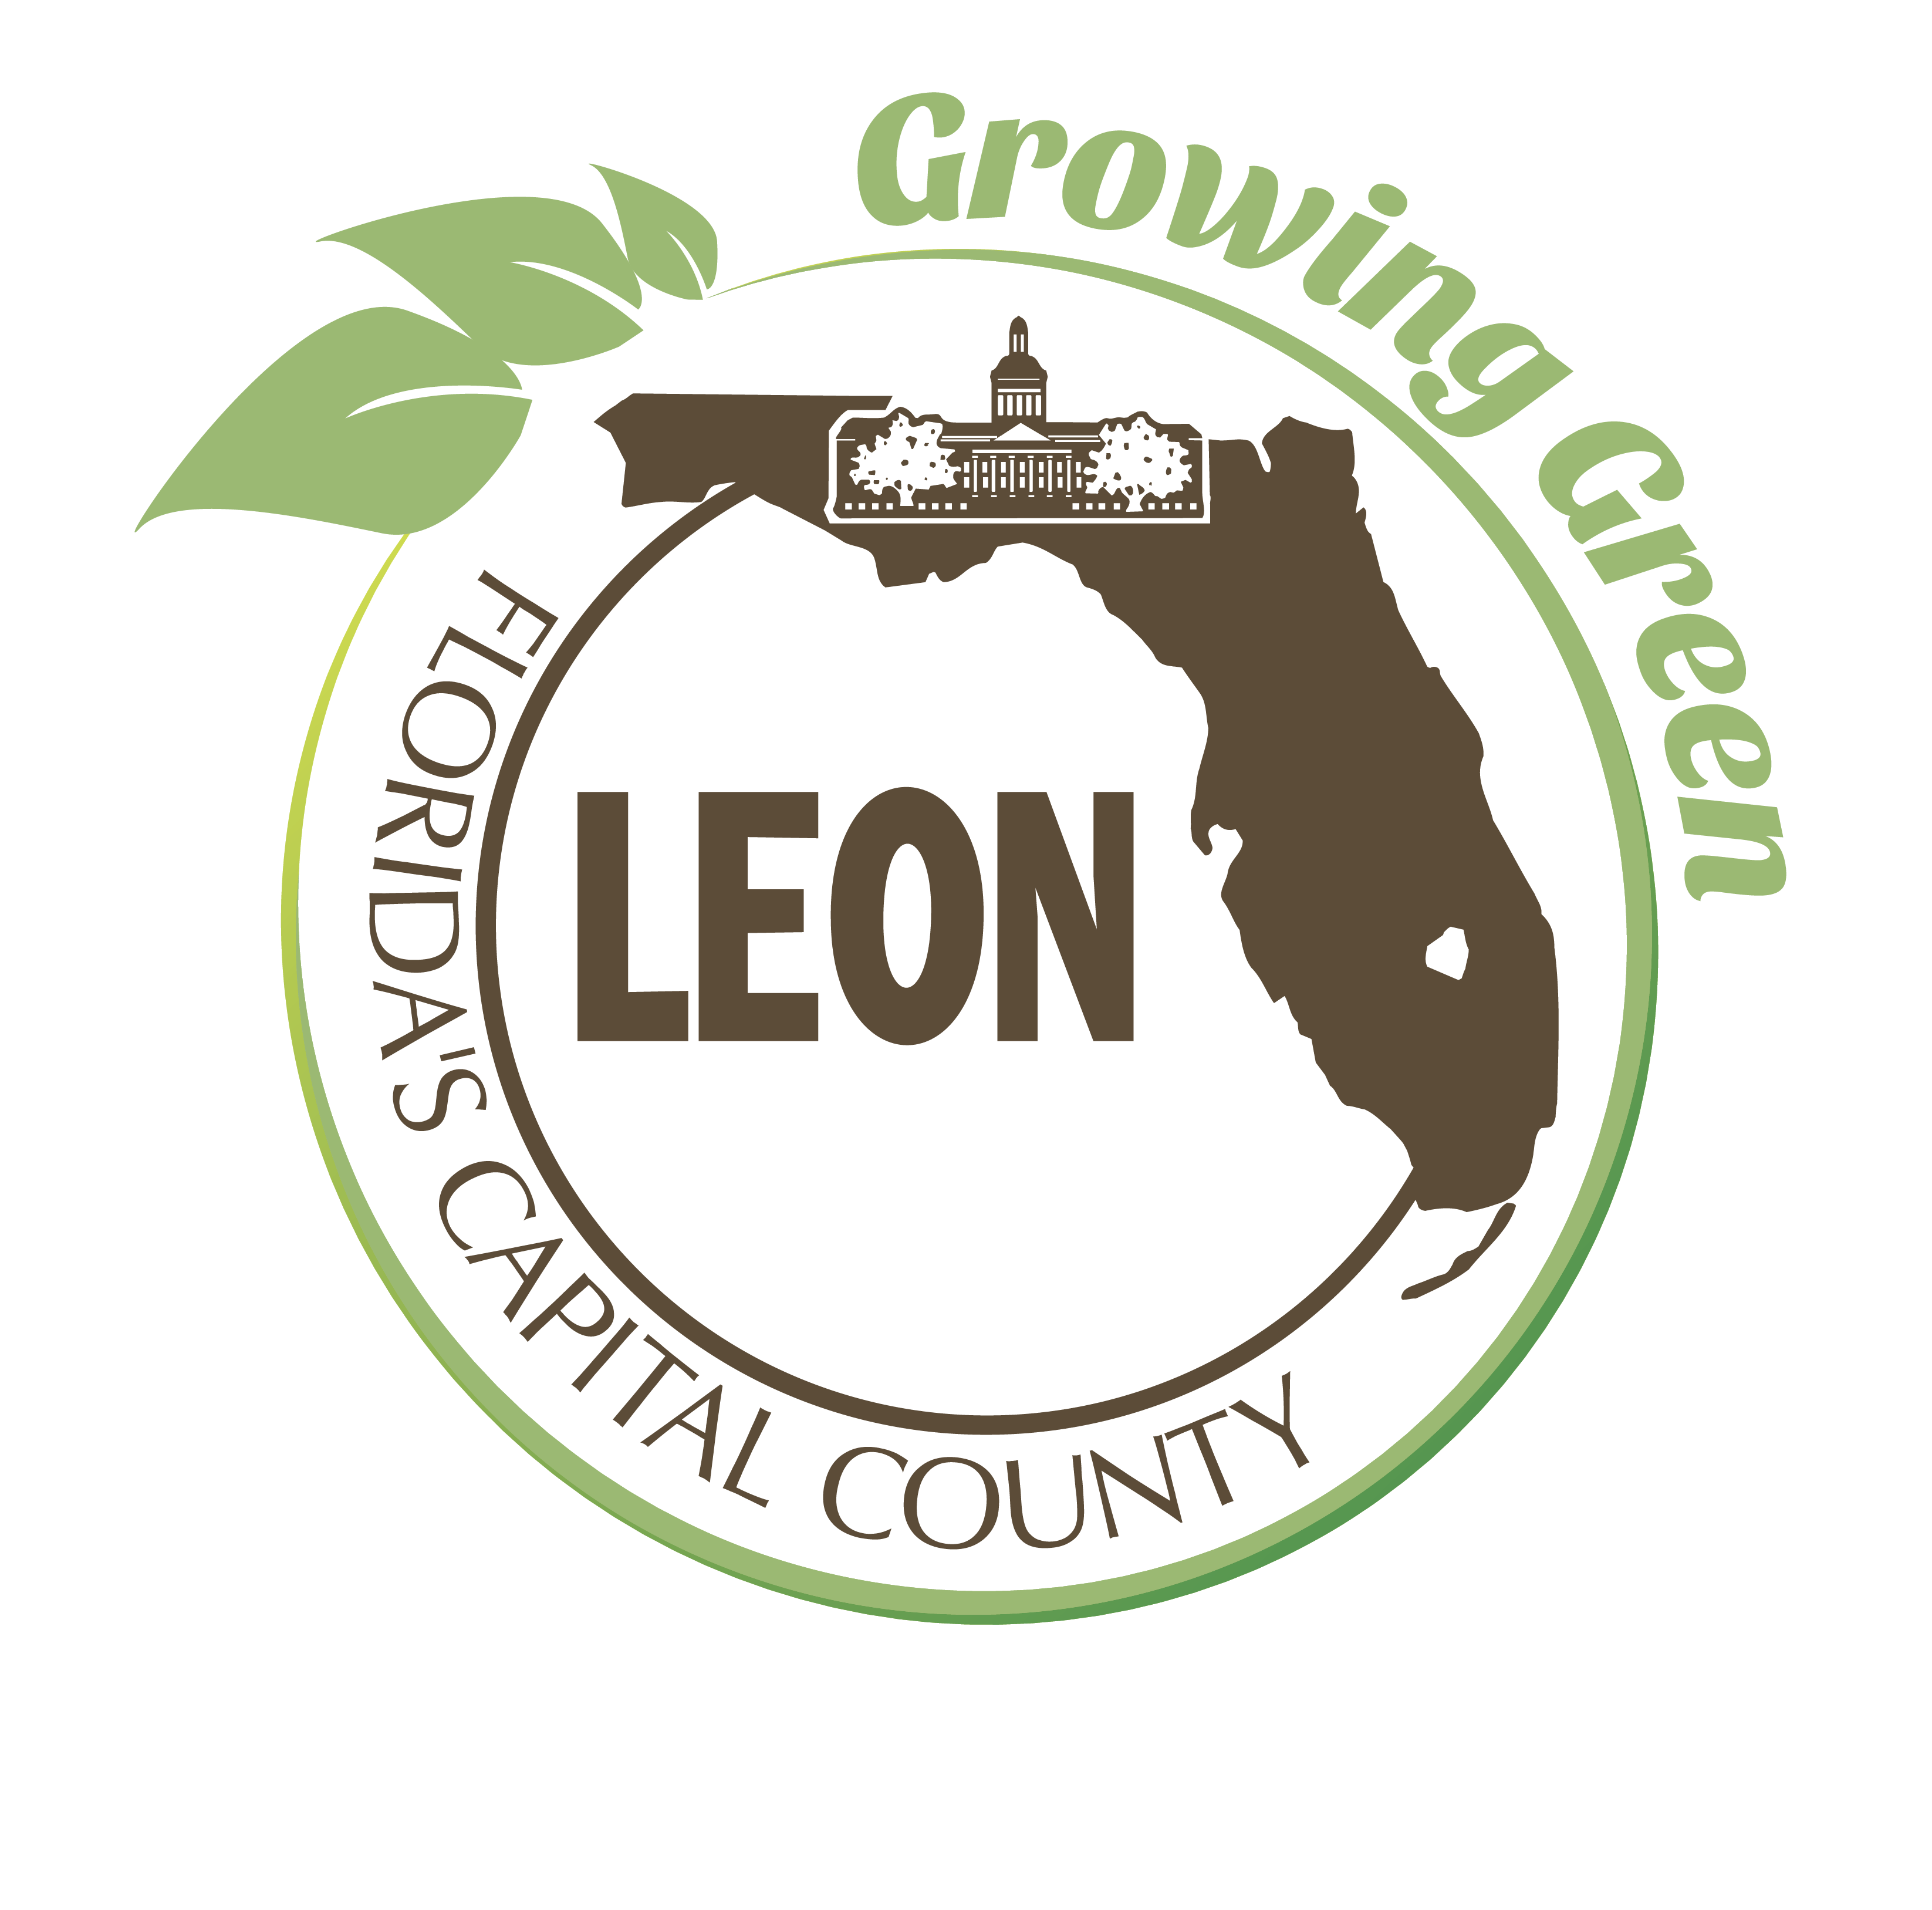 Growing Green Leon County